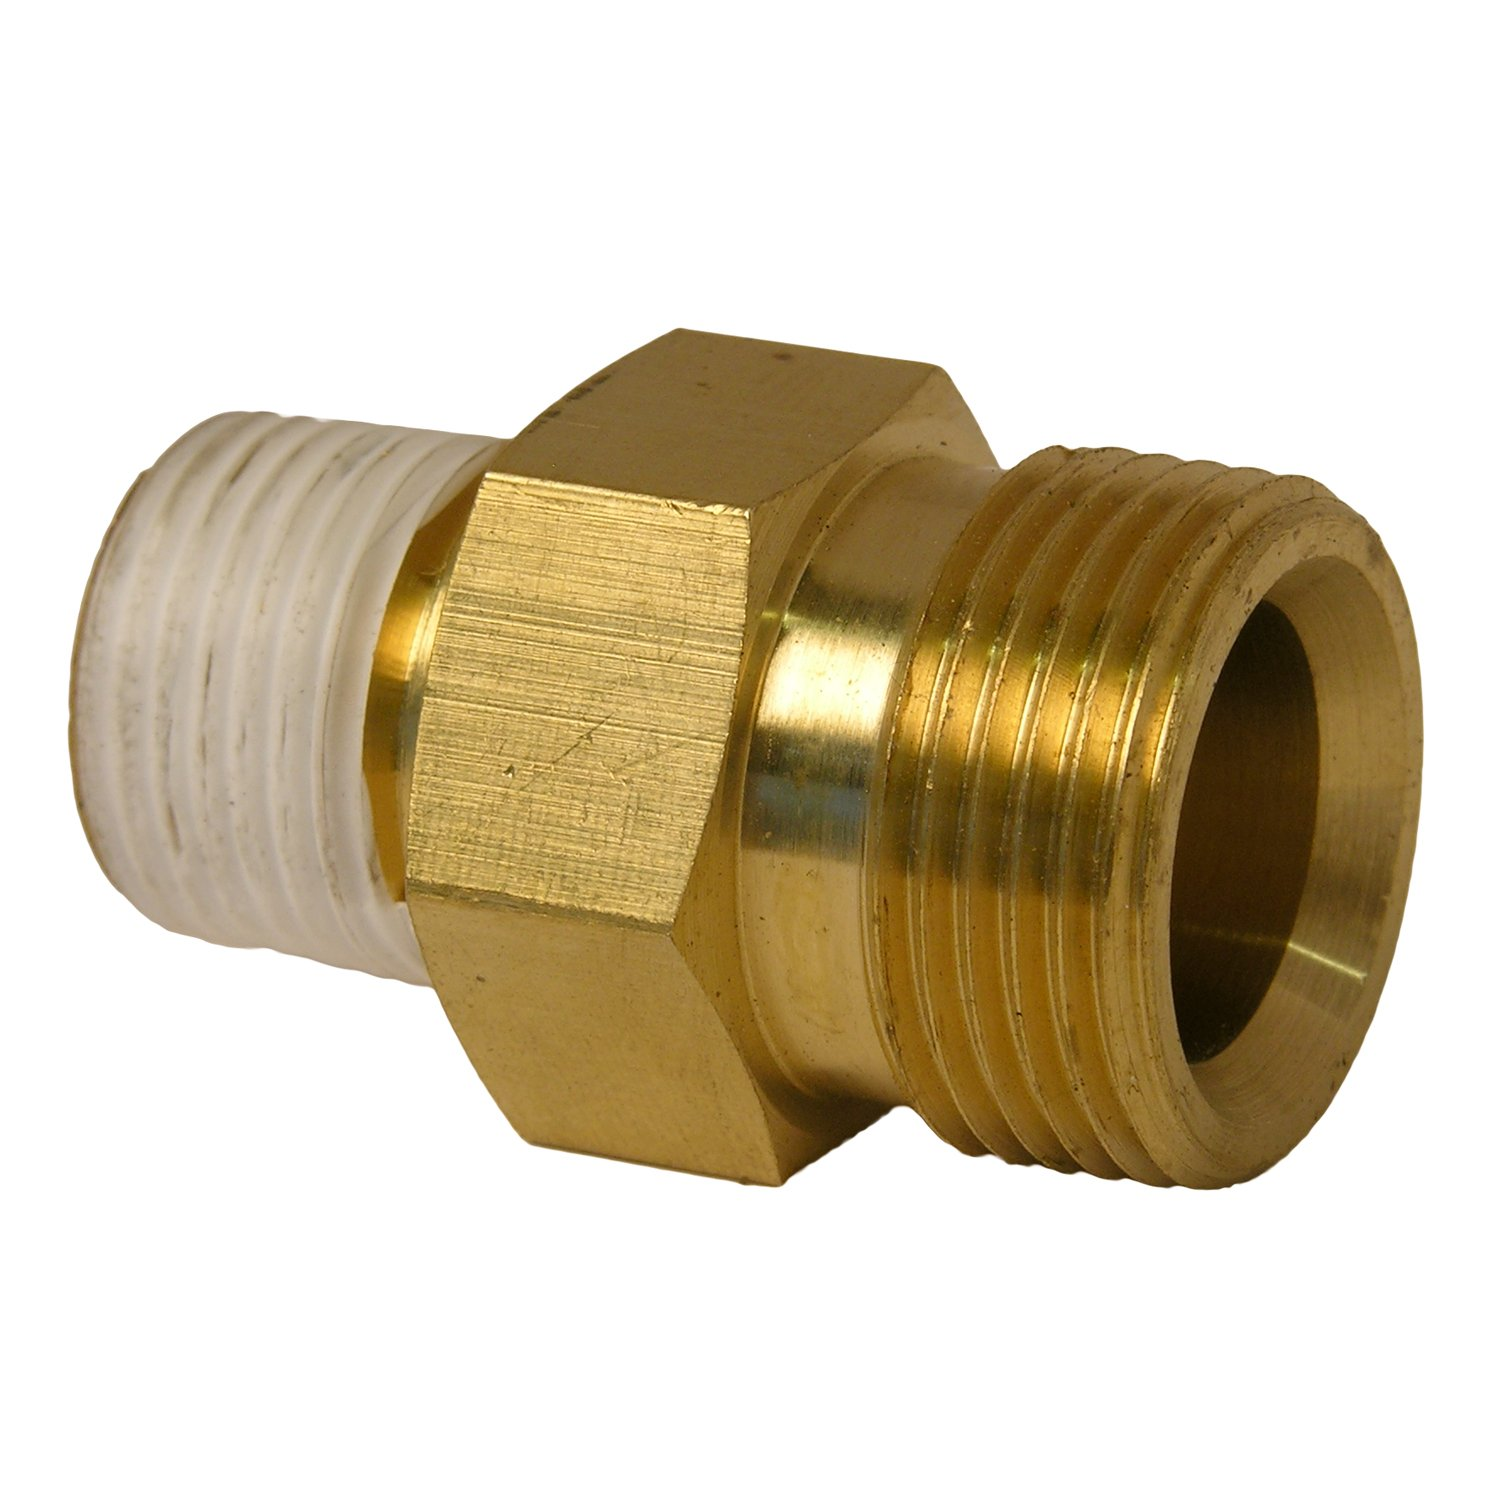 LASCO 60-1057 Pressure Washer High Pressure,Karcher 22MM Adapter Fitting X 3/8-Inch Brass Male Pipe Thread